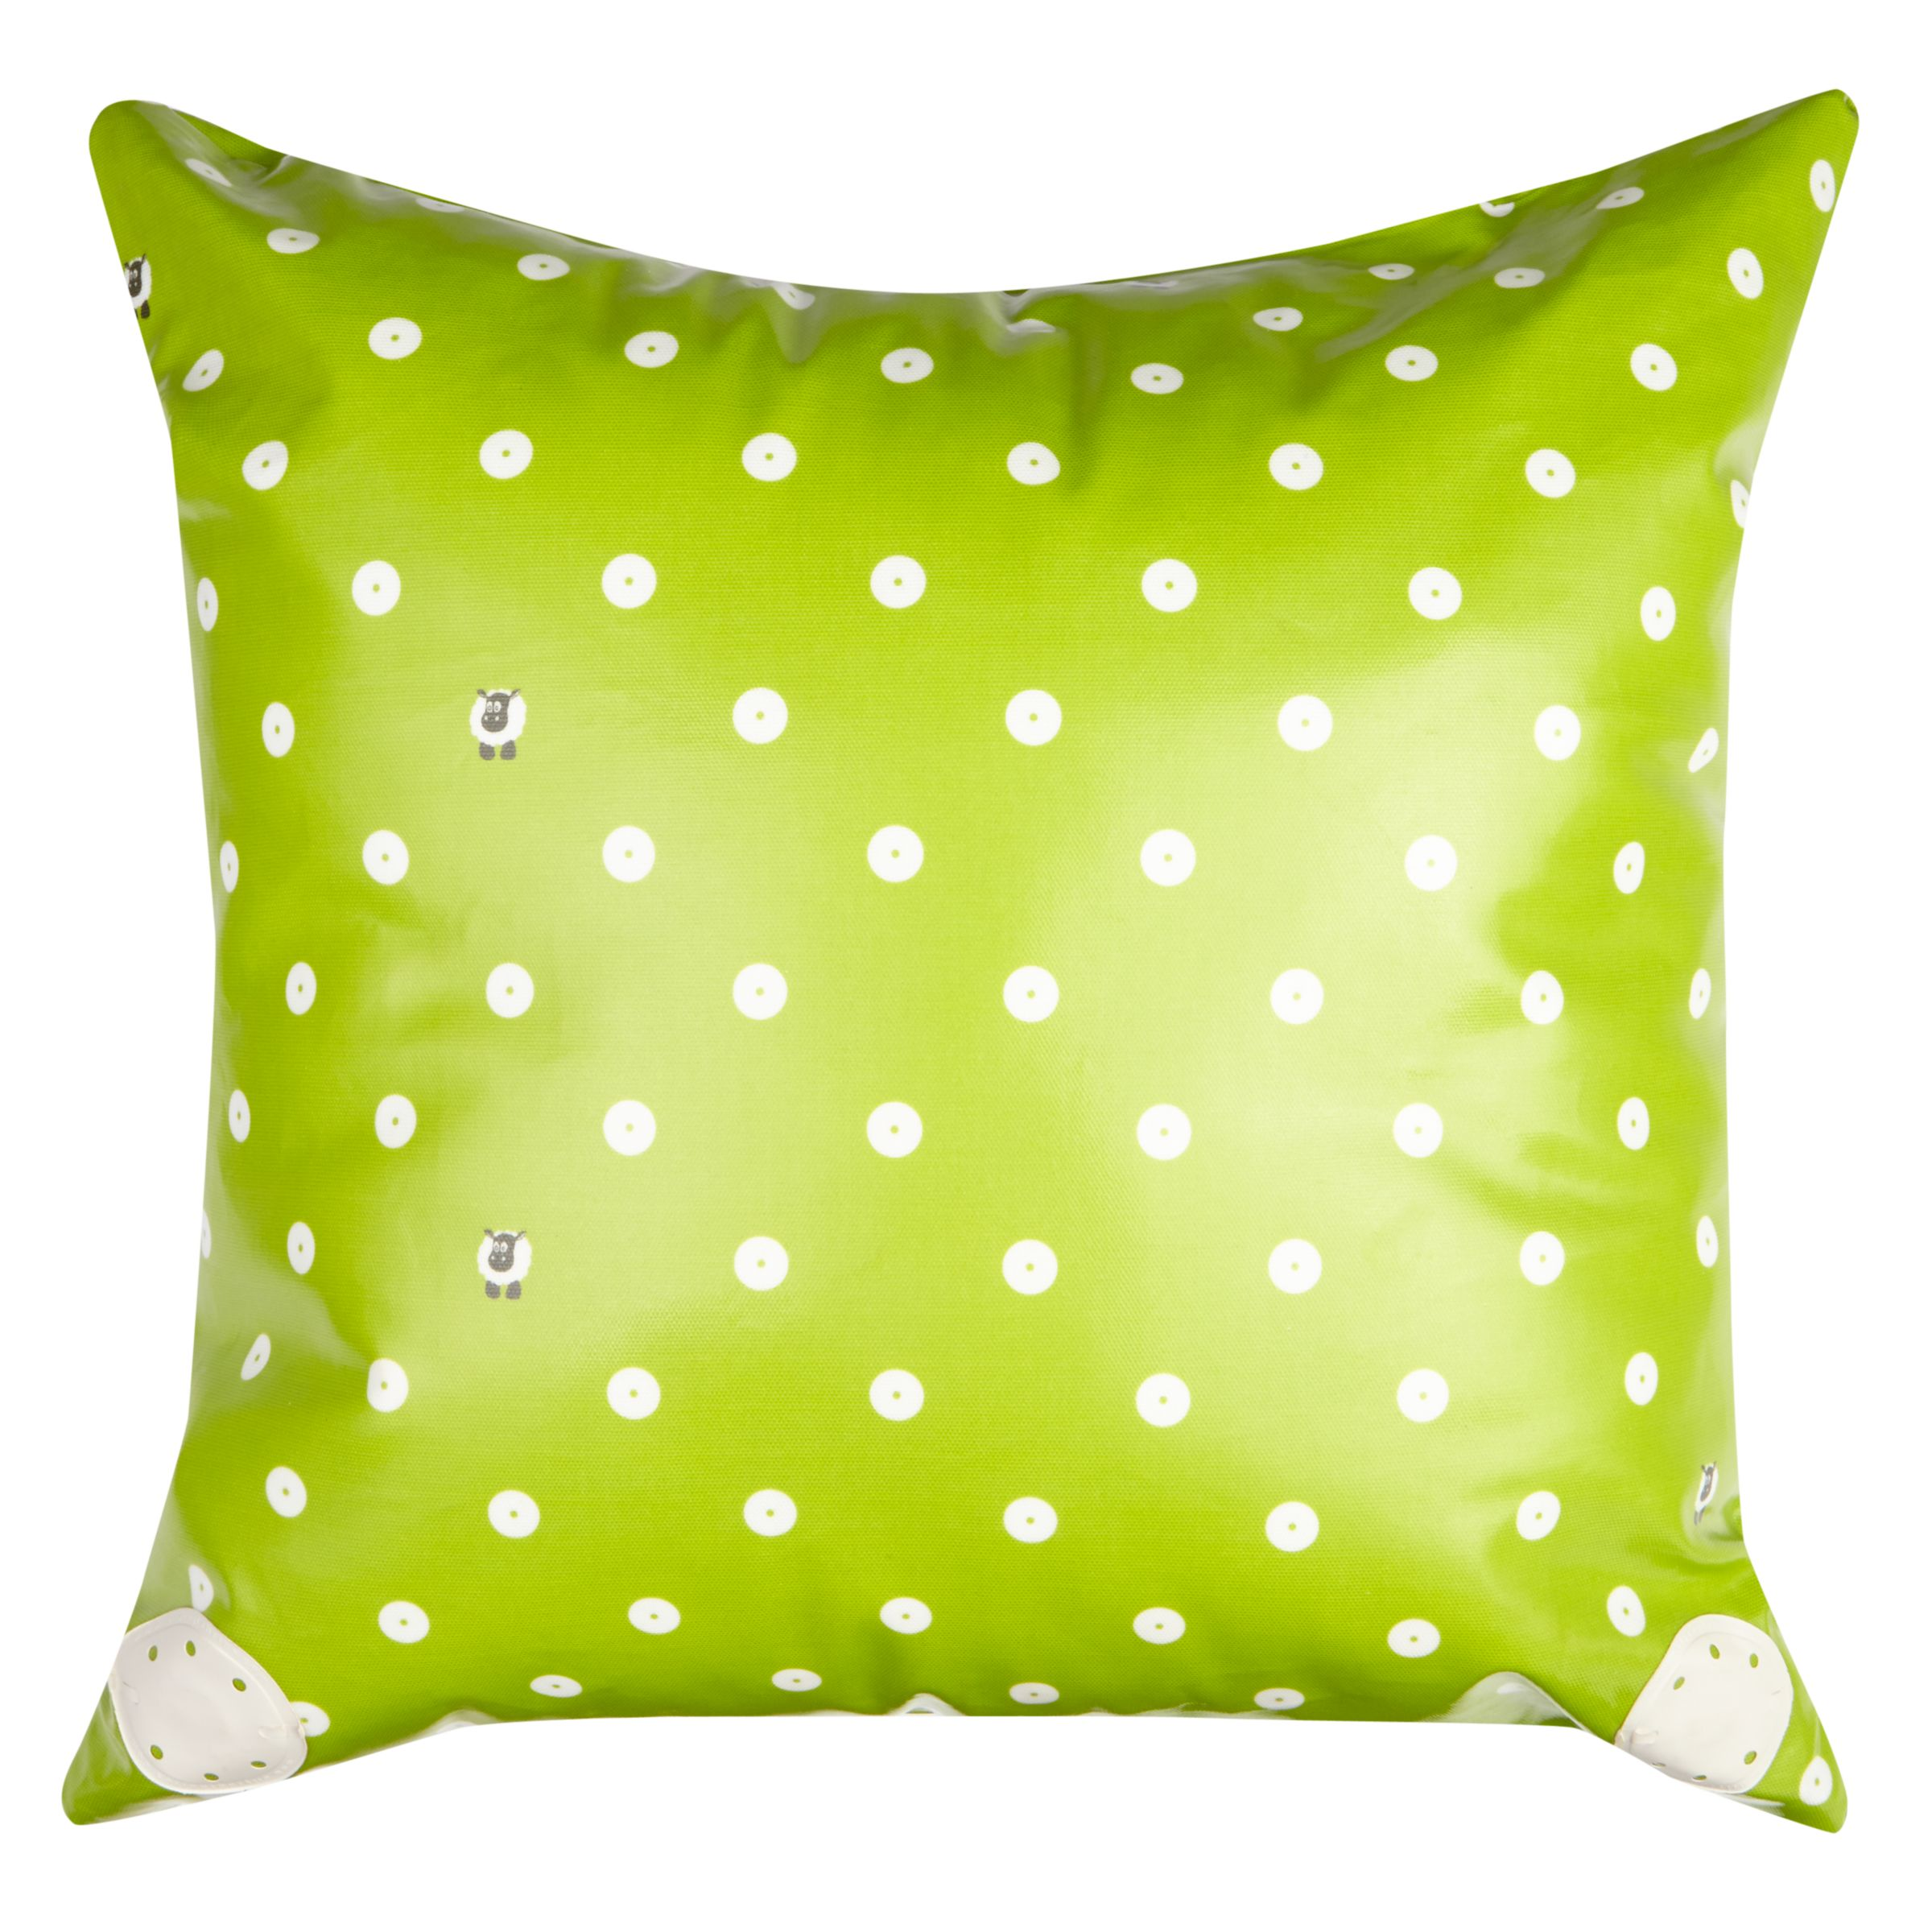 Oily Rag Spotty Outdoor Cushion, 40 x 40cm, Lime Green